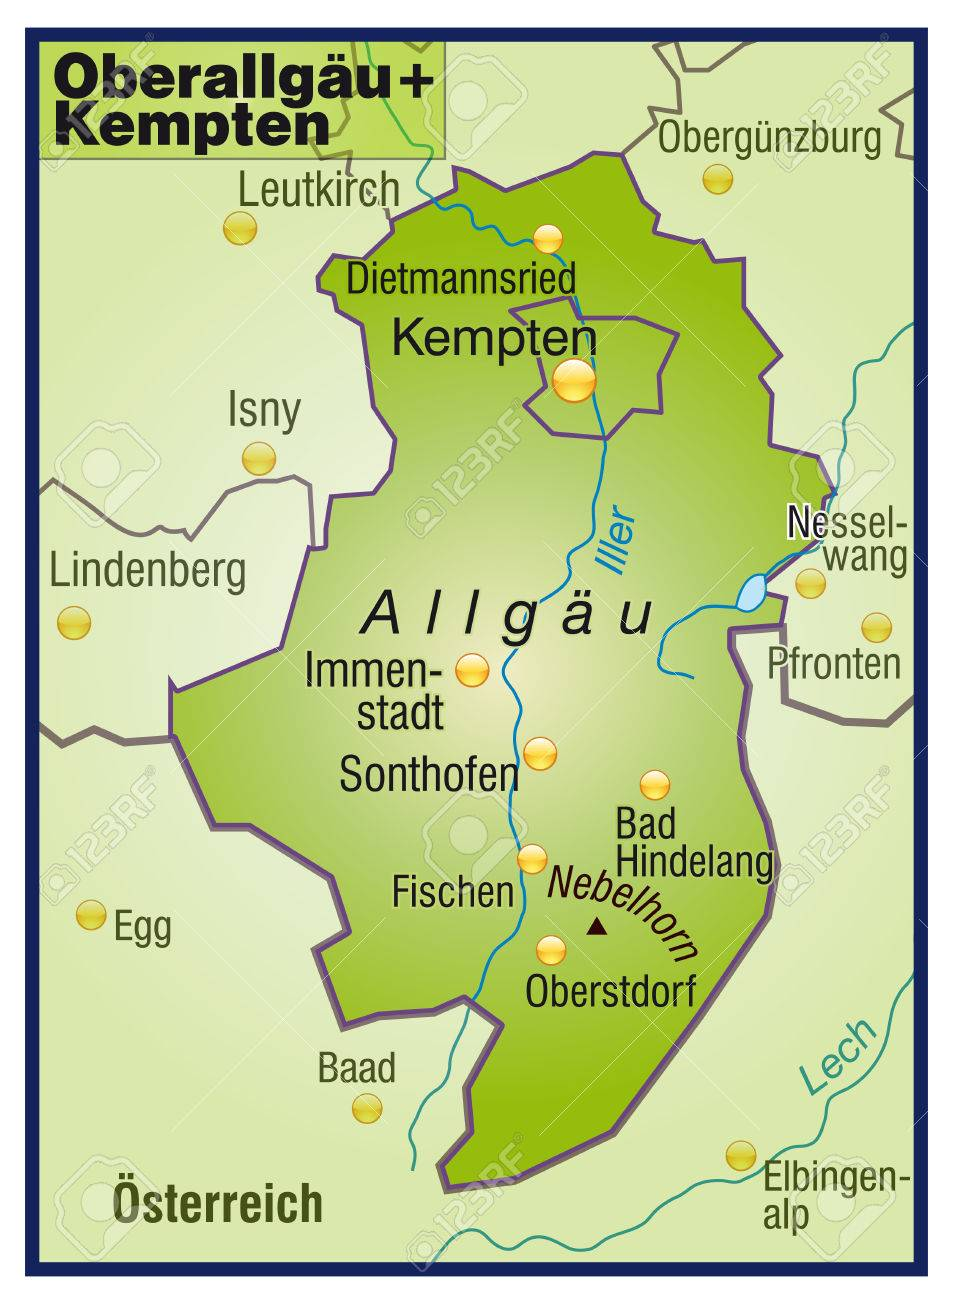 Map Of Oberallgaeu Kempten As An Overview Map In Green Royalty